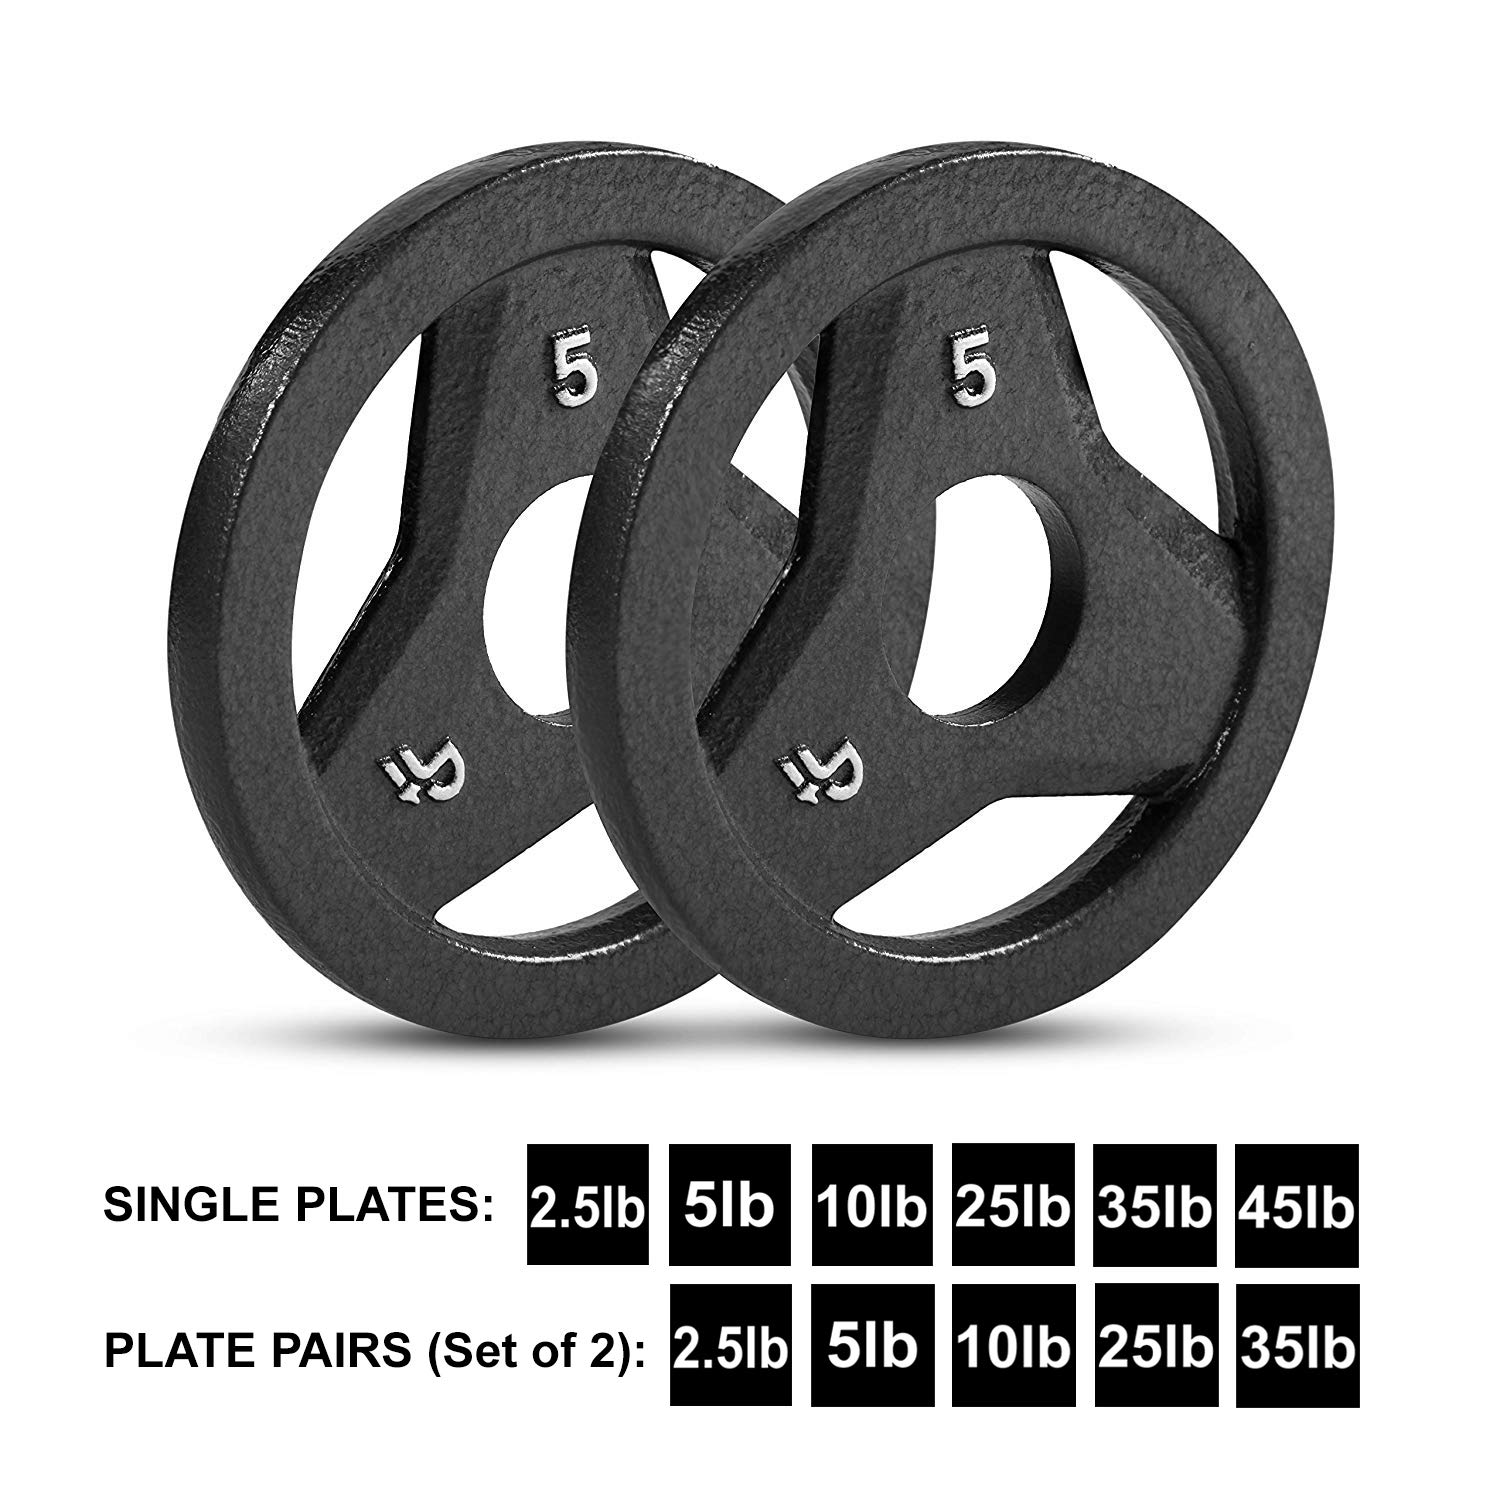 OneFitWonder Contrast Olympic Bumper Plate Pairs 10lb – 55lb Virgin Rubber with Steel Insert for Strength Training and Weightlifting